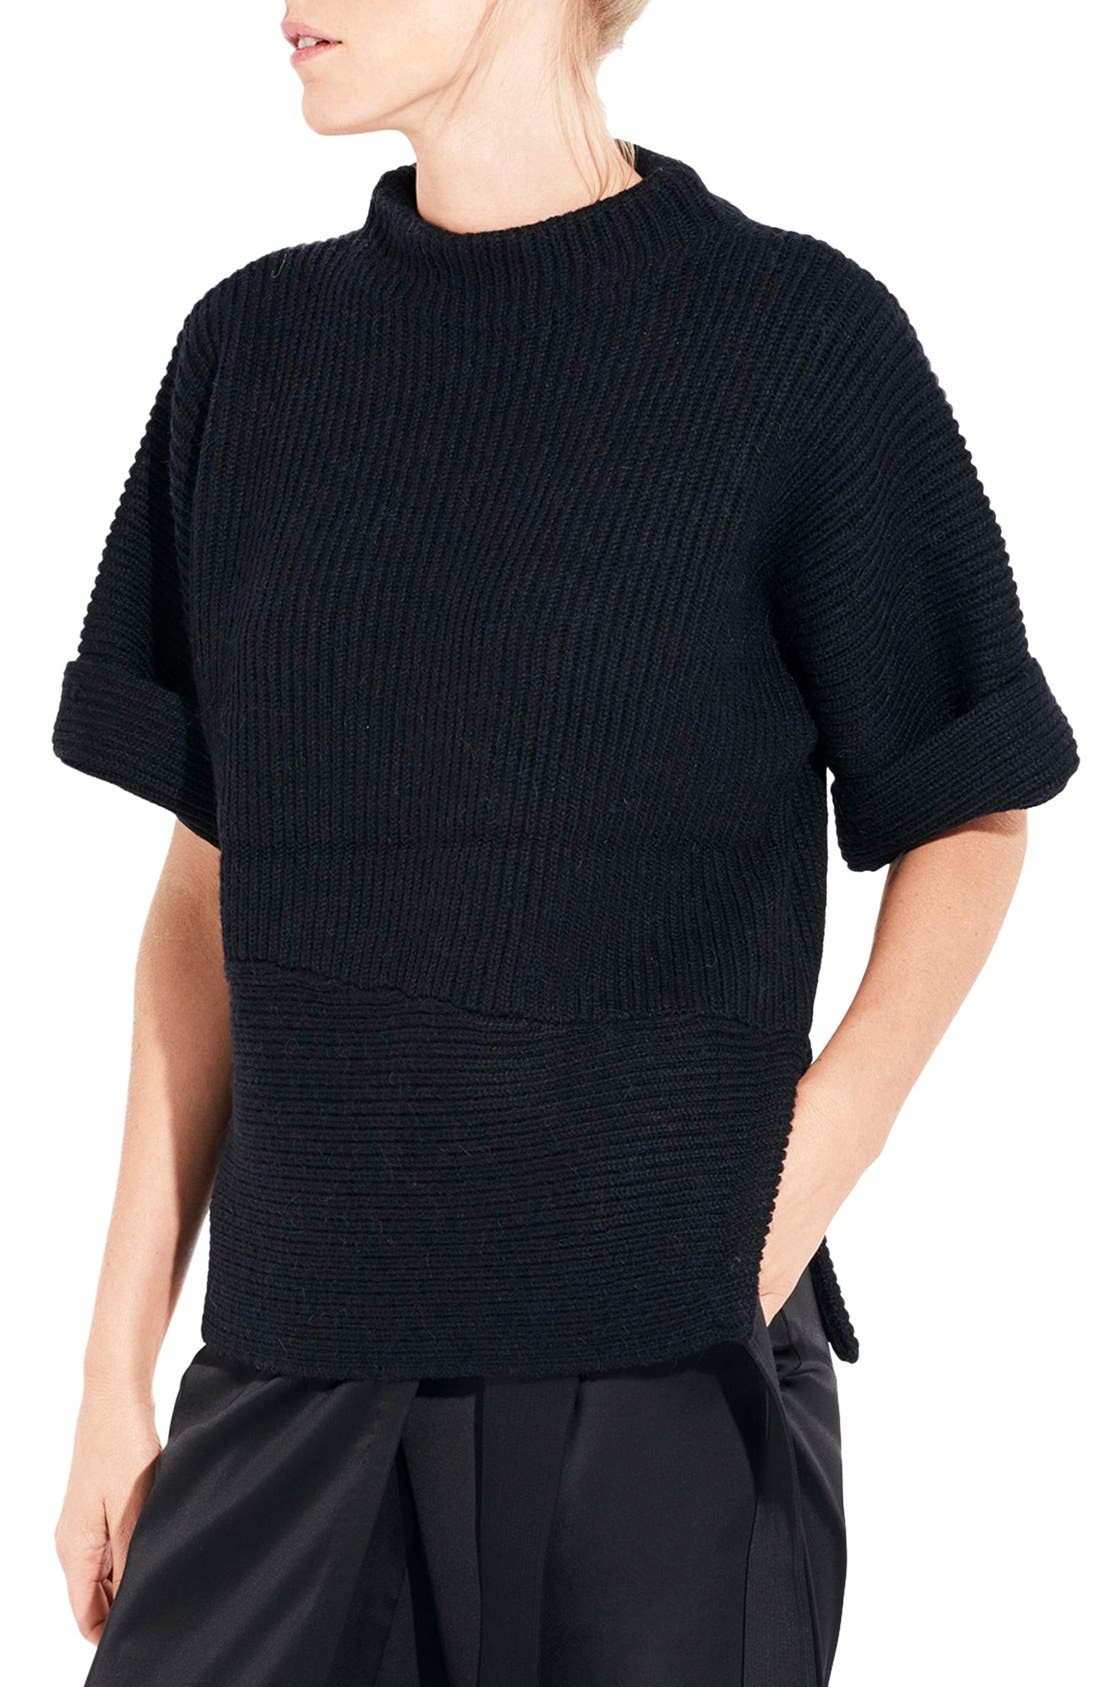 Alternate Image 1 Selected - AYR The Fika Merino & Alpaca Rib Sweater